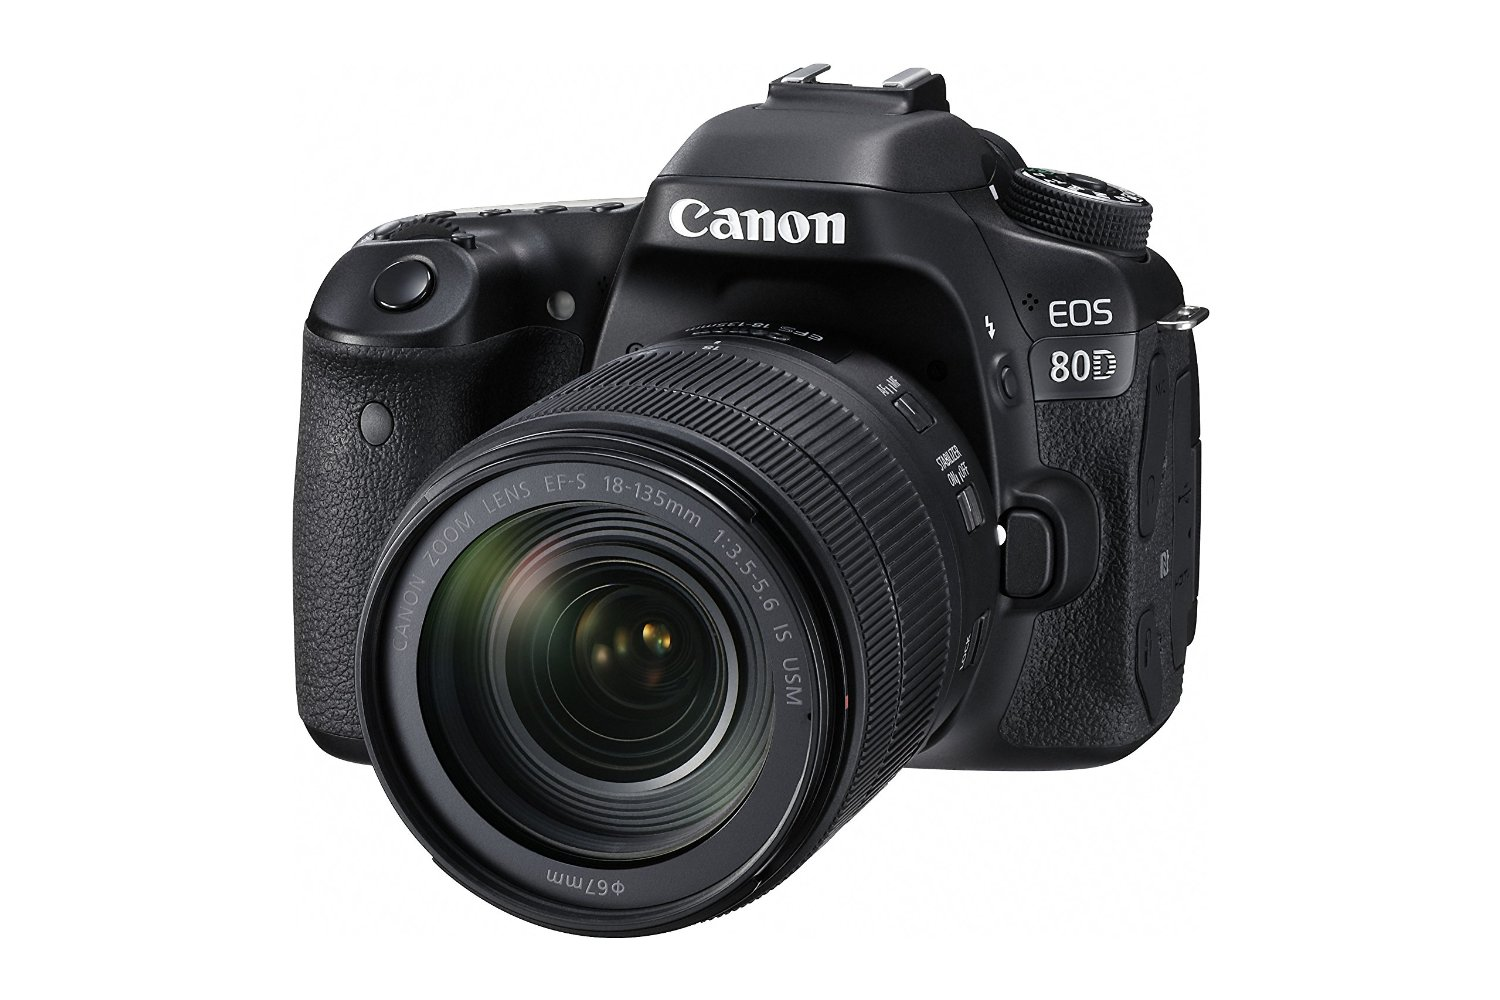 Superb Only This Is Much Cheaperthan Hot Canon Eos Stm Kit Canondirectstore Has A Deal On Refurbished Canon Eos Is Stm Kit At Canon Store Canon T6i Refurbished 18 135 Canon T6i Refurbished Body dpreview Canon T6i Refurbished